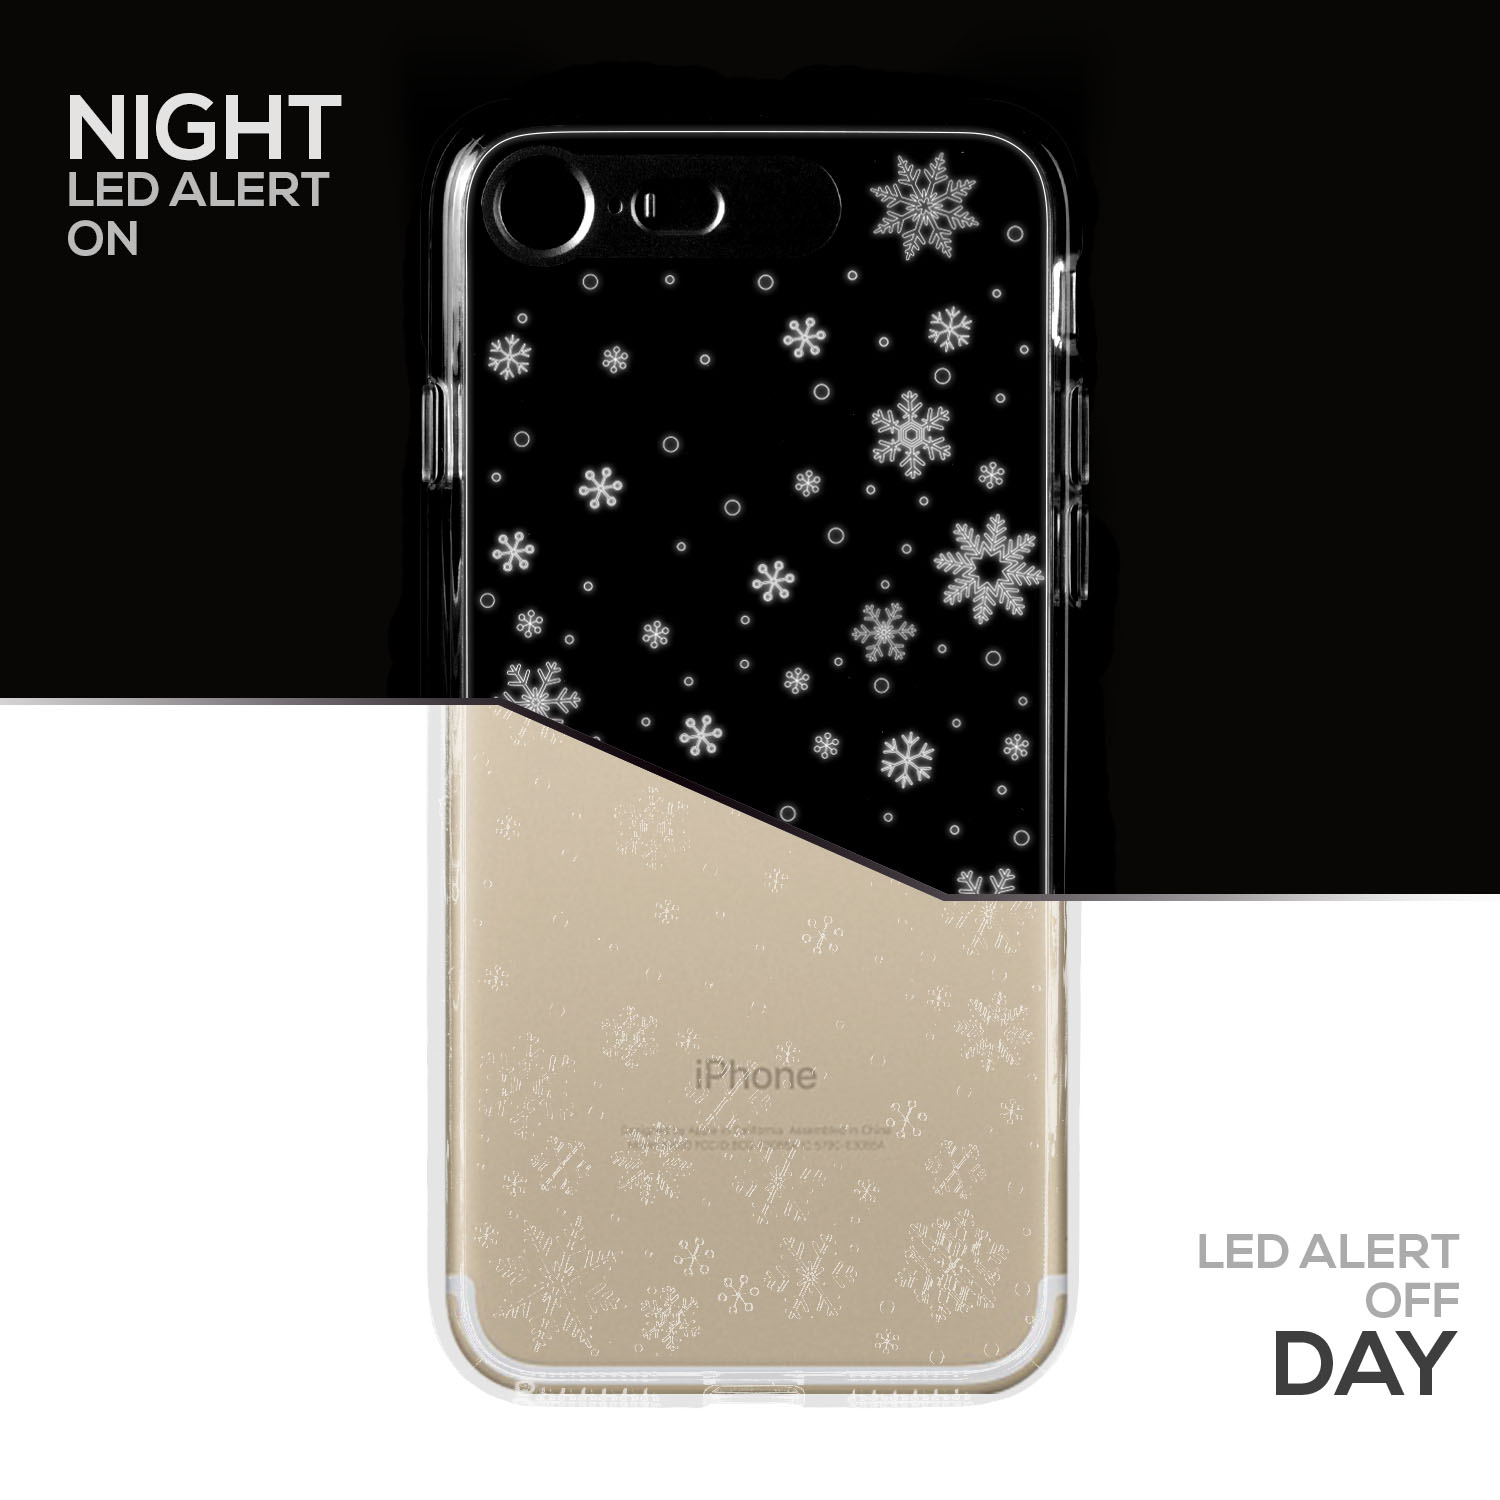 SOJITEK iPhone 7 Gold Twinkling Light Clear Case w/ Snow Pattern (Patent Pending Twinkling Light Technolgy using LED Flash Alerts)